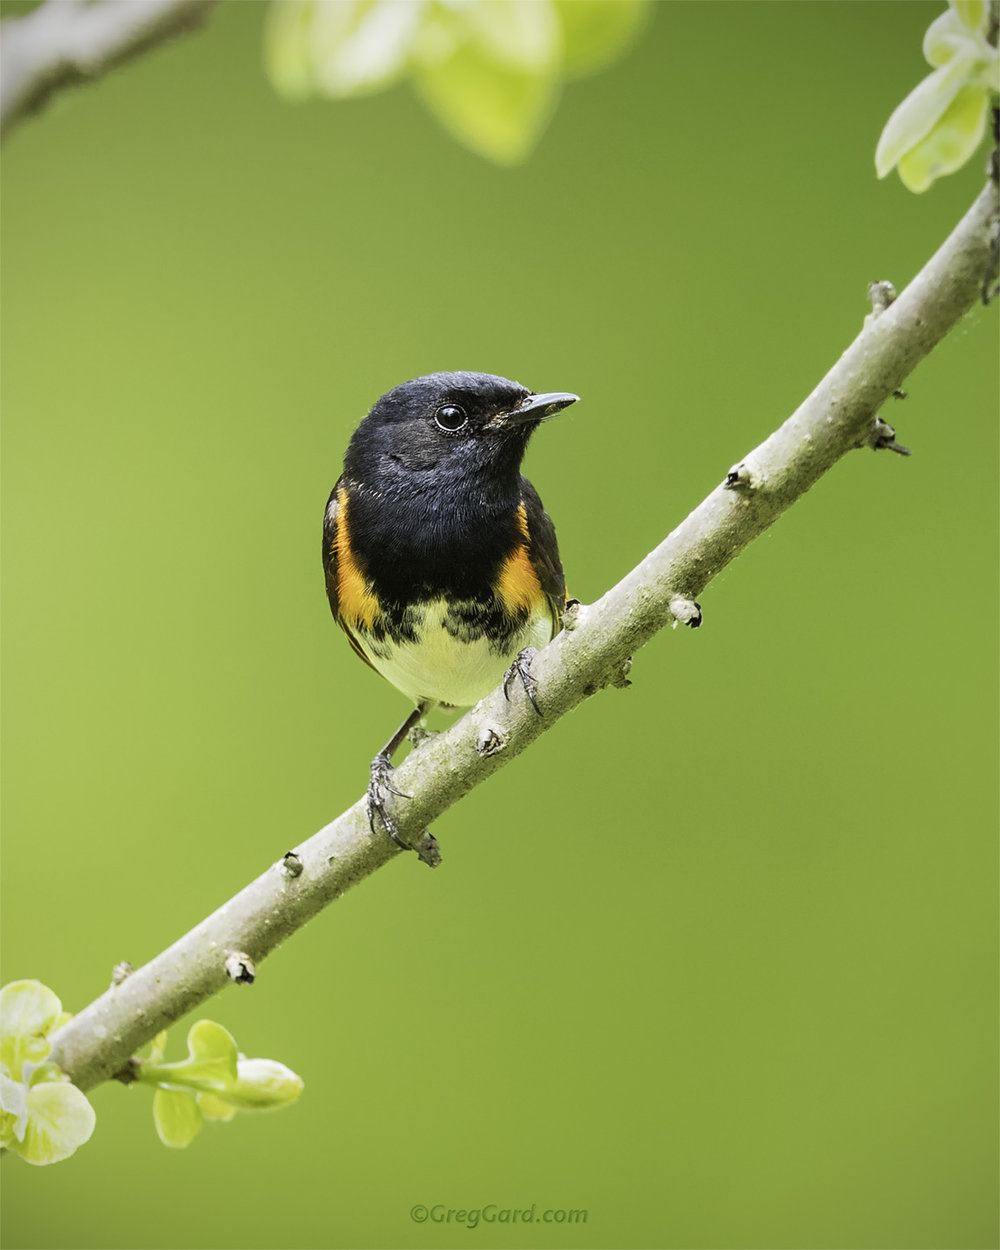 American Redstart on a green background - NJ